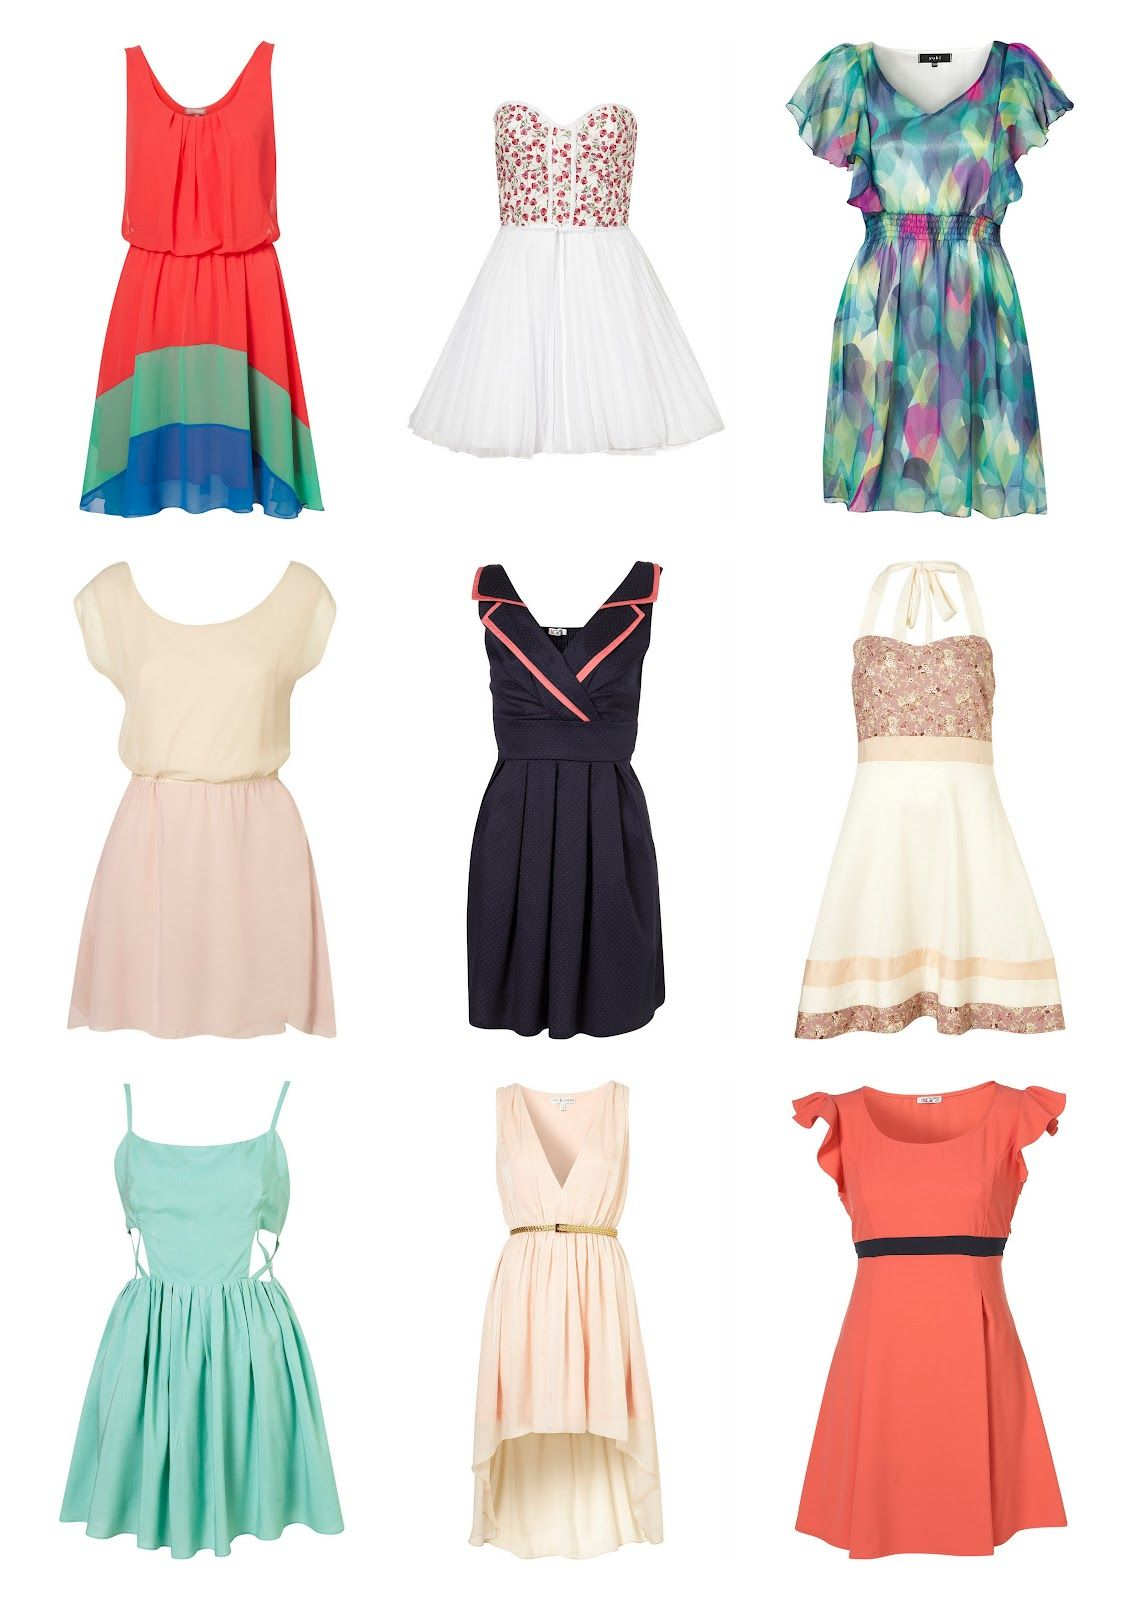 Cute Clothes For Summer | Cute Summer Outfits Designs | Pinterest ...